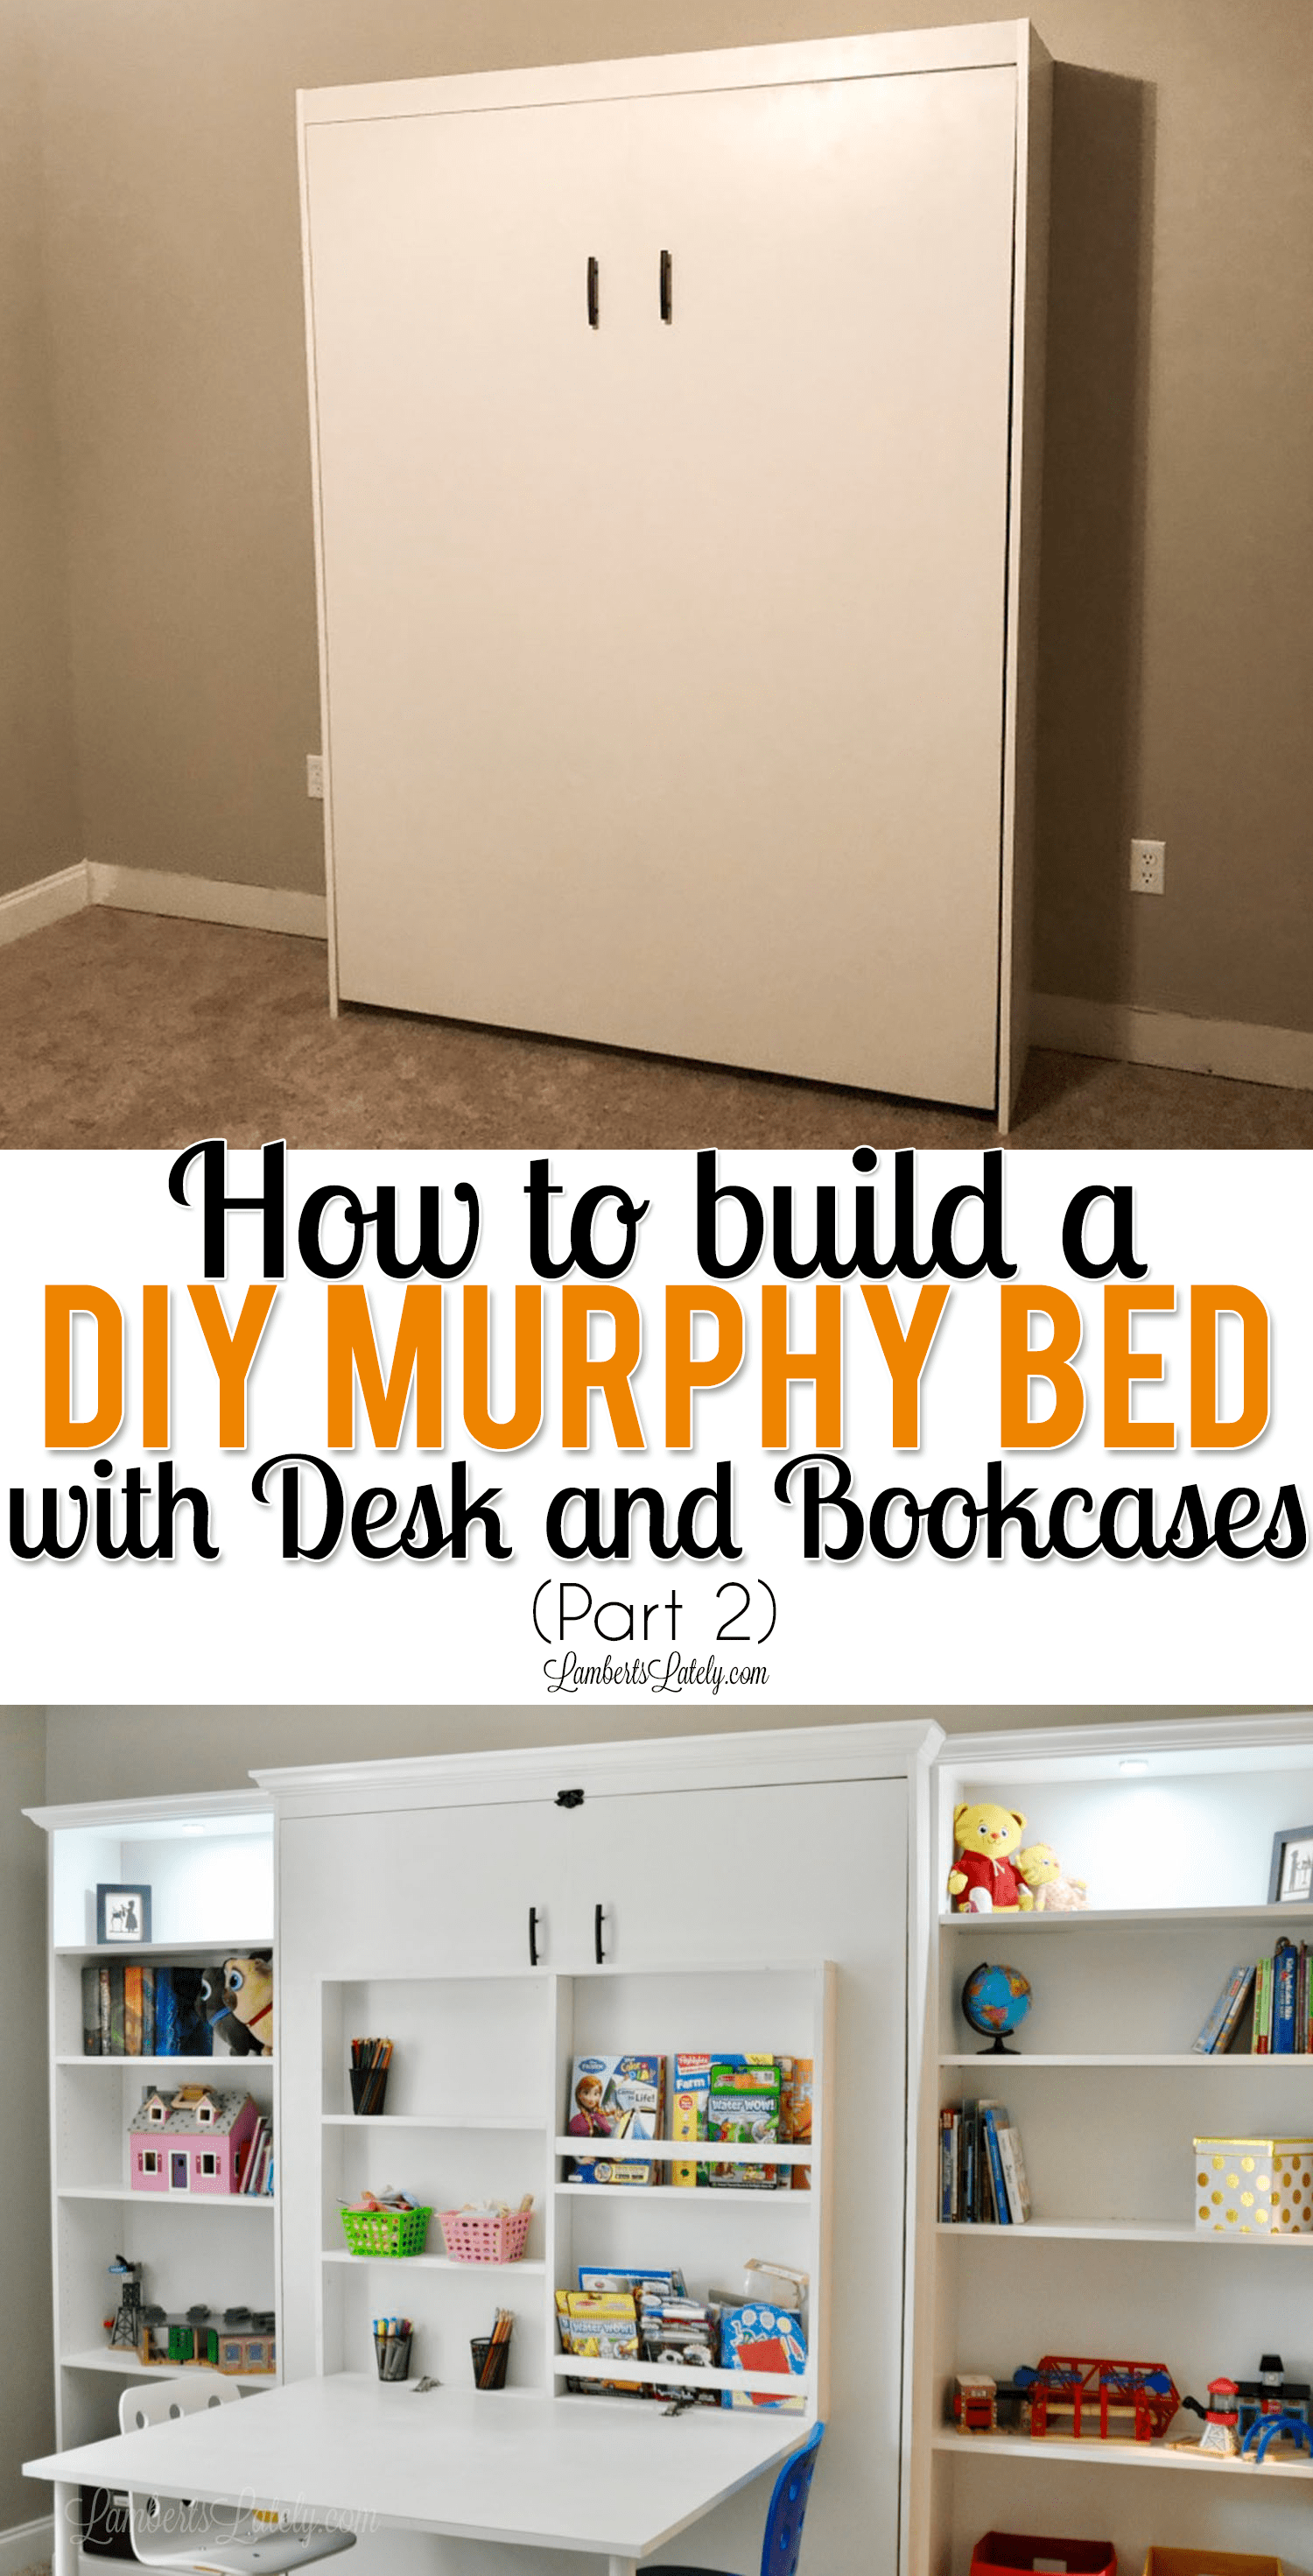 How To Build A Diy Murphy Bed With Desk And Bookcases Part 2